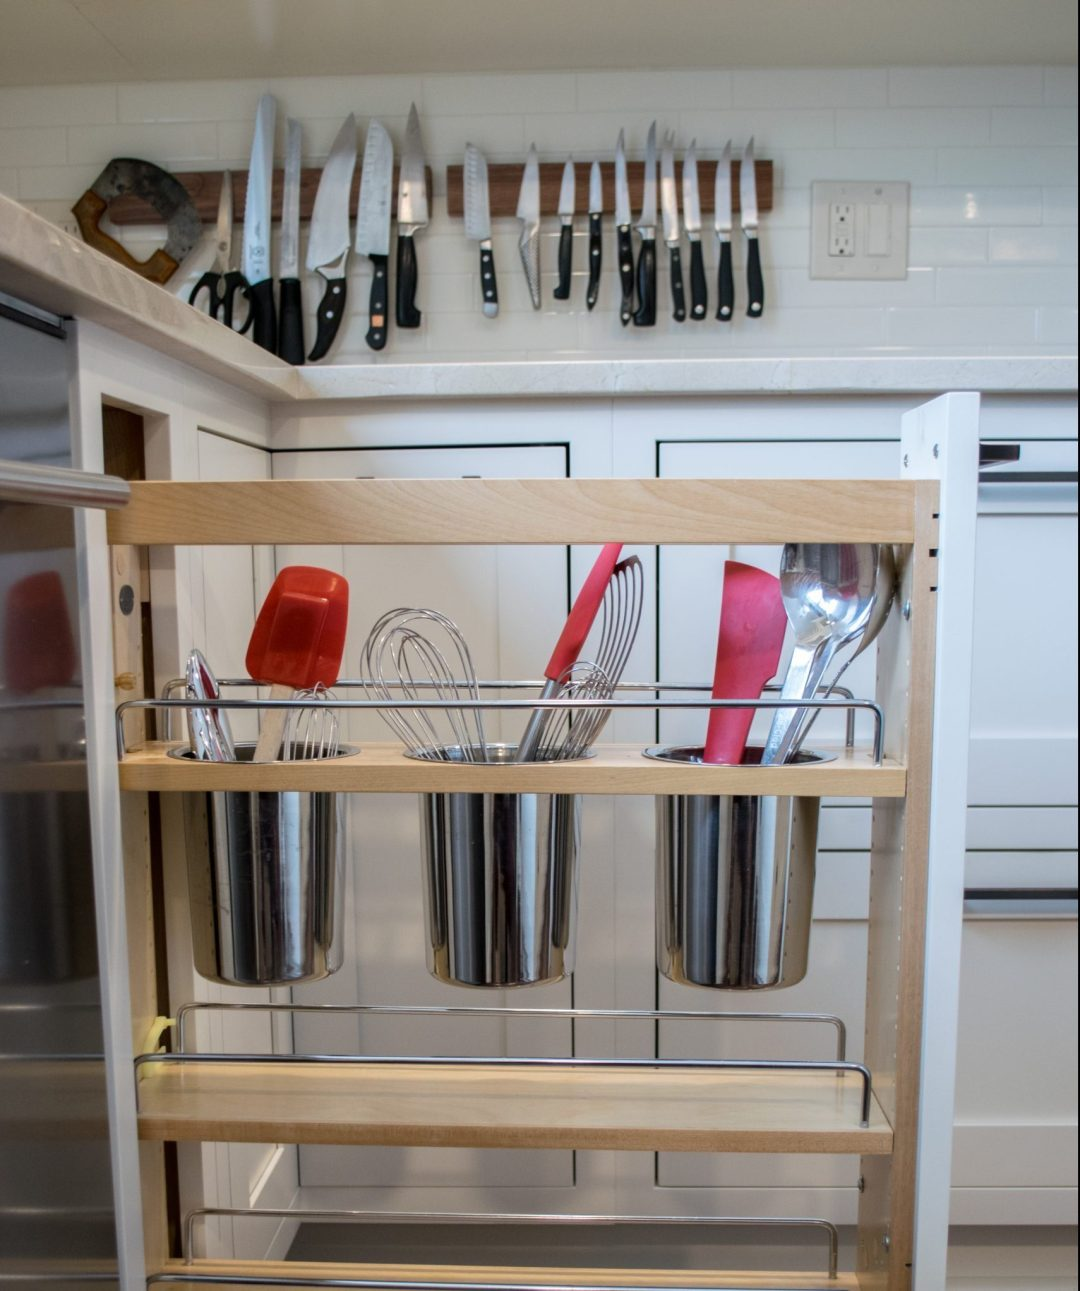 pull out utensil drawer and kitchen storage